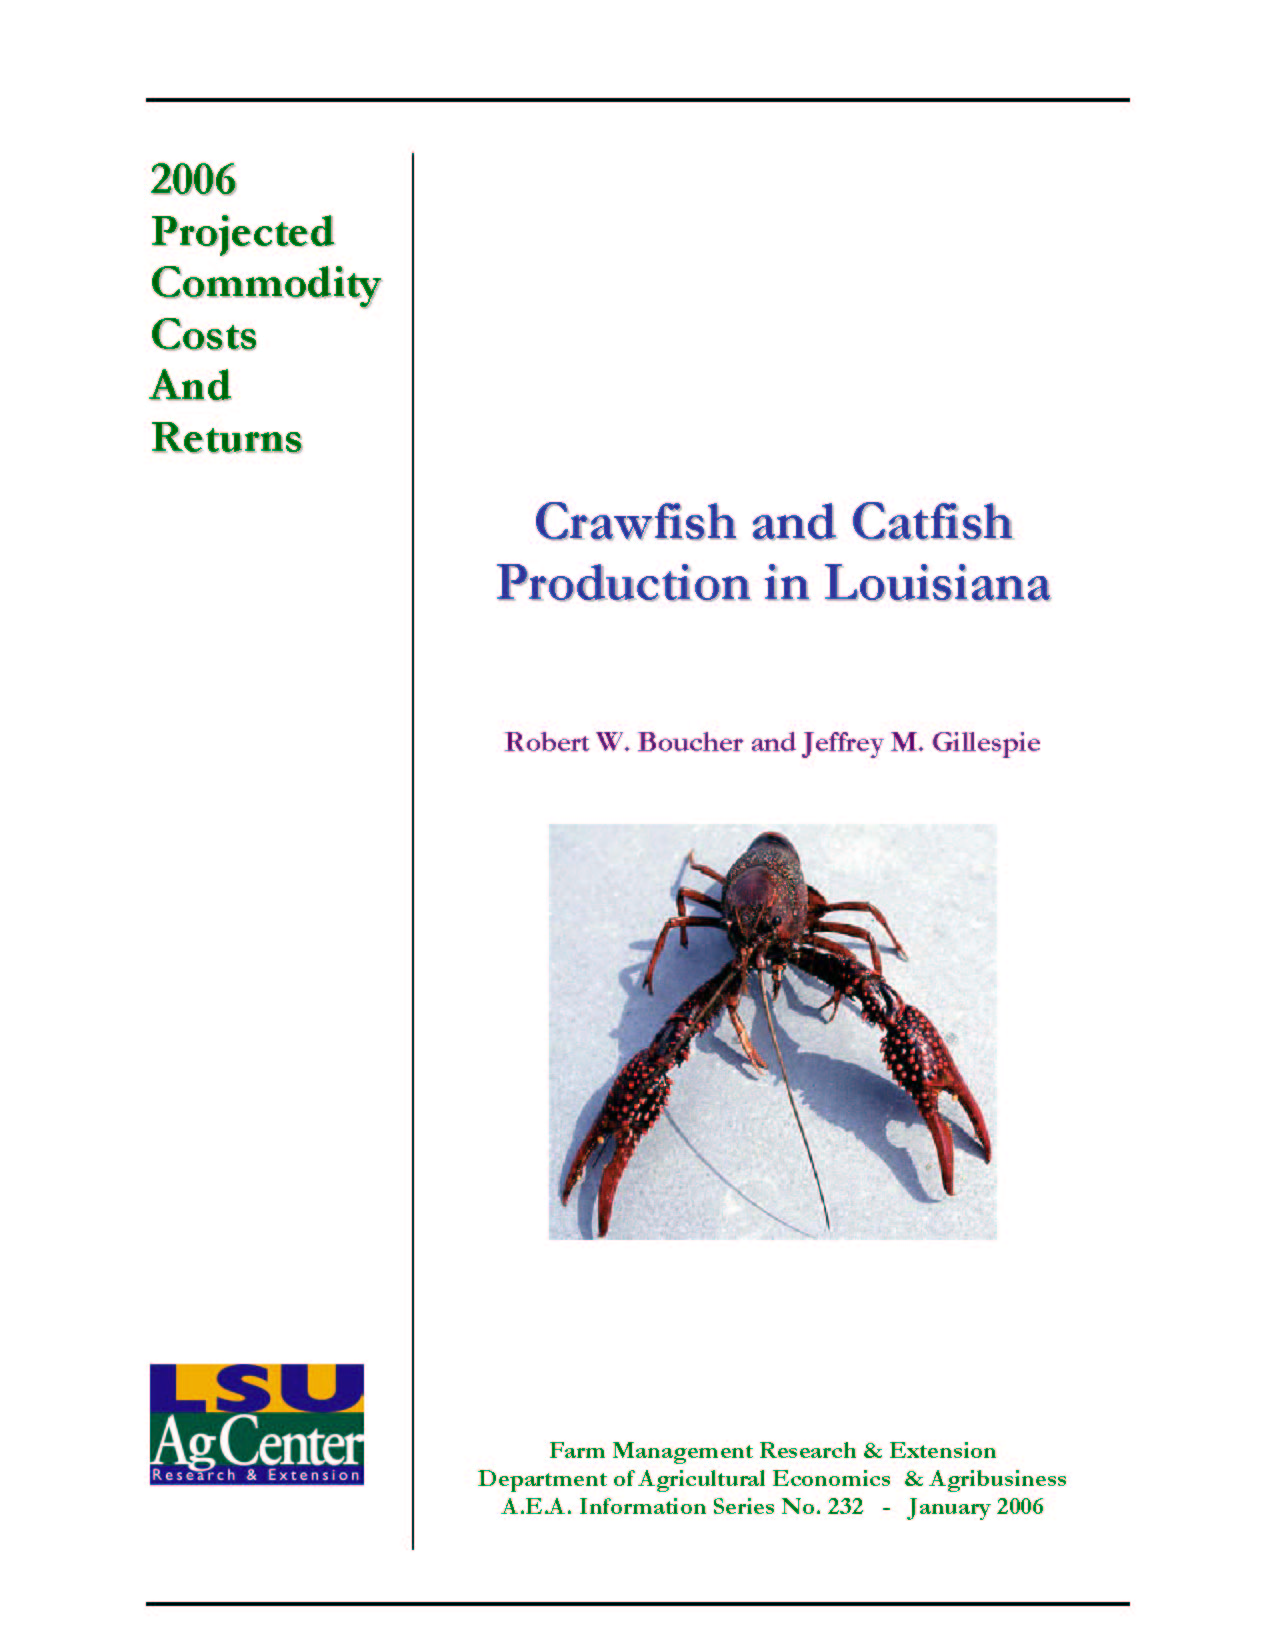 2006 Projected Crawfish and Catfish Production Costs for Louisiana